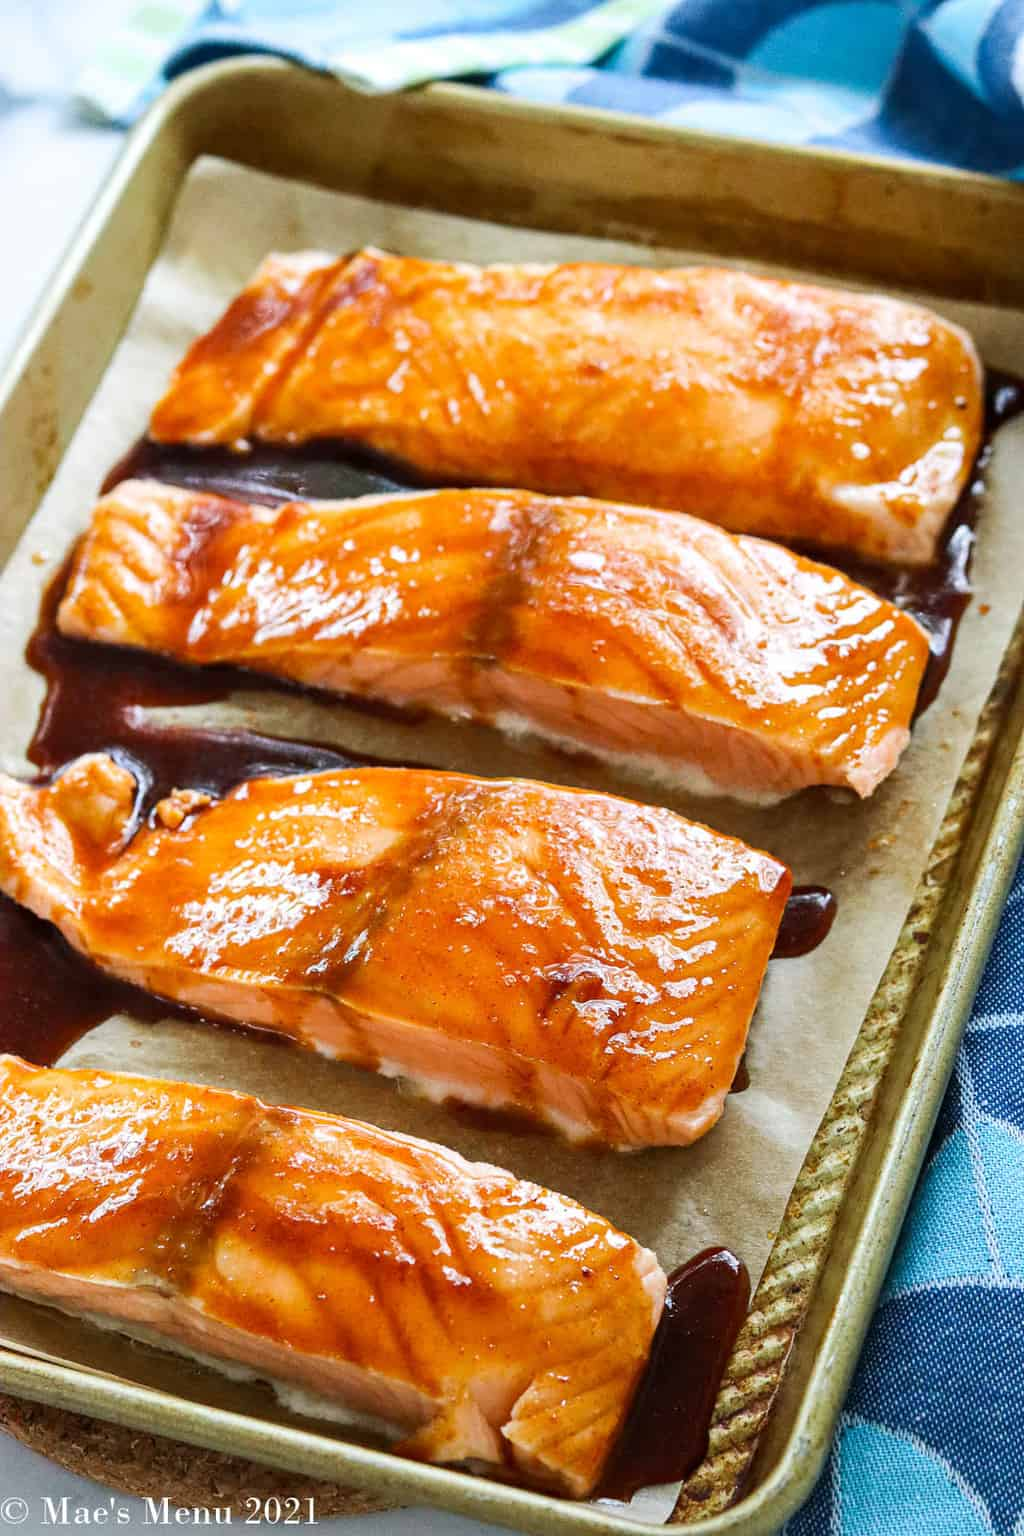 Salmon fillets spread with bourbon glaze before baking